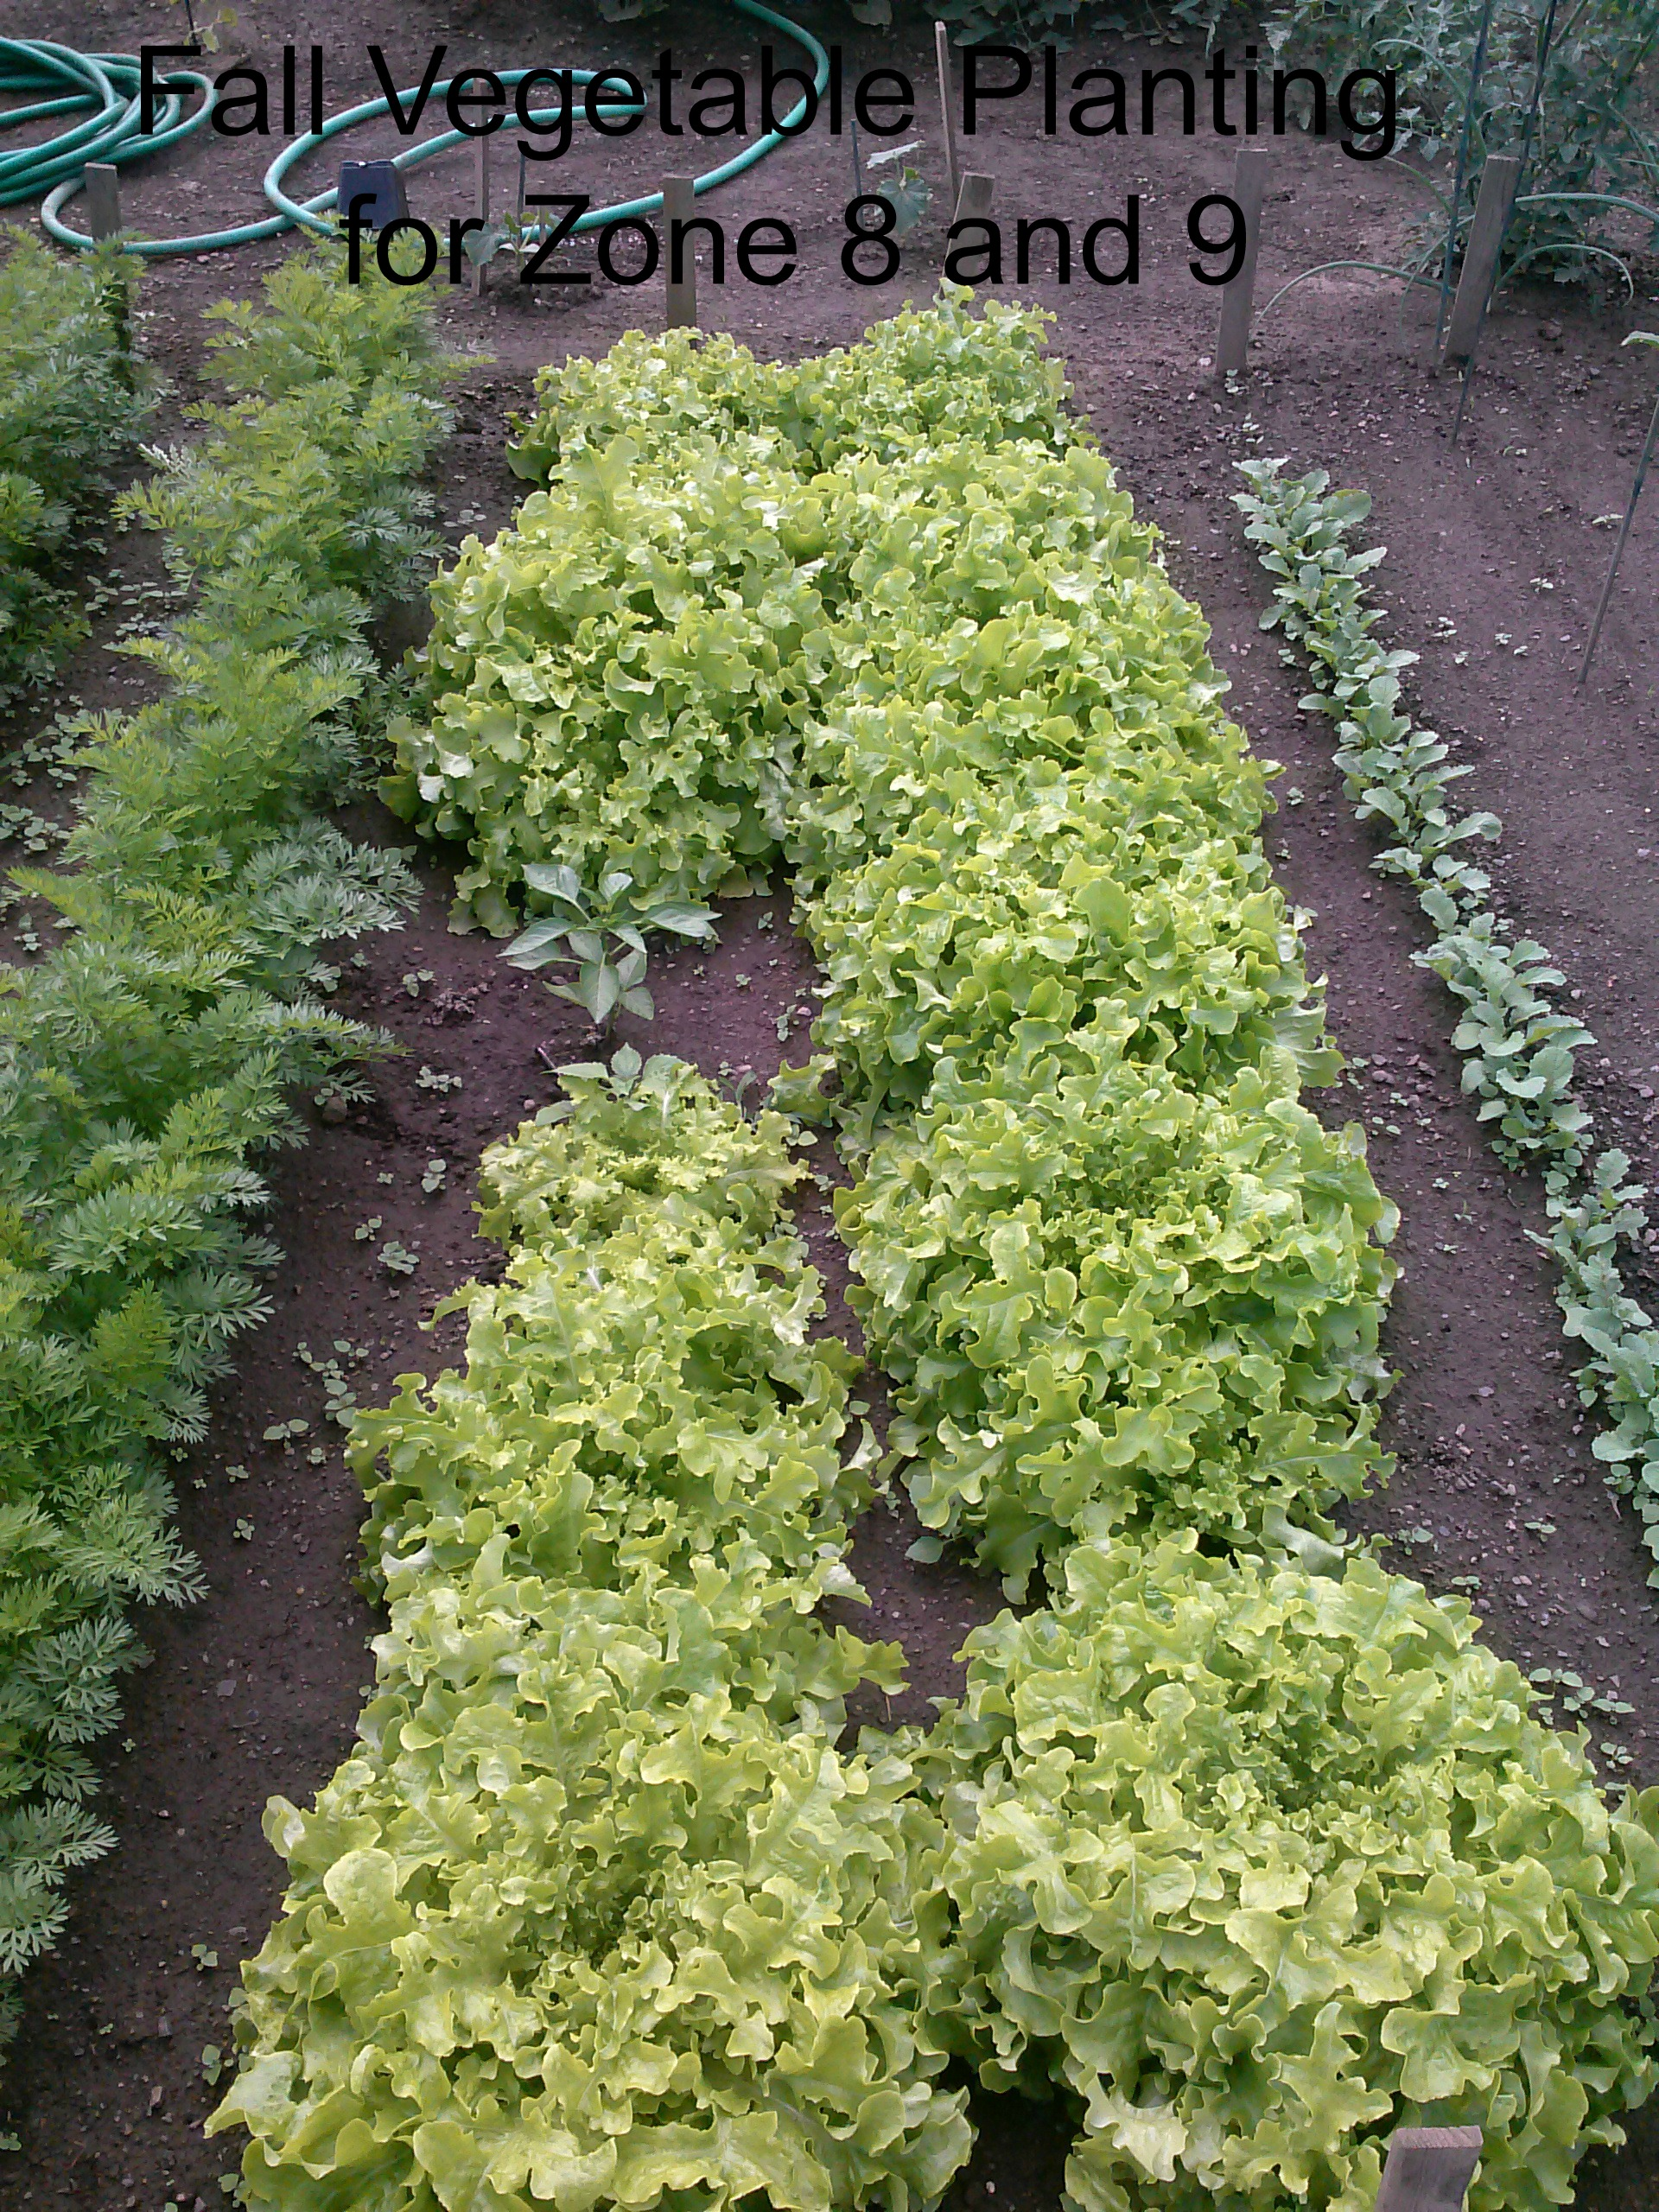 Fall Vegetable Planting for Zone 8 and 9